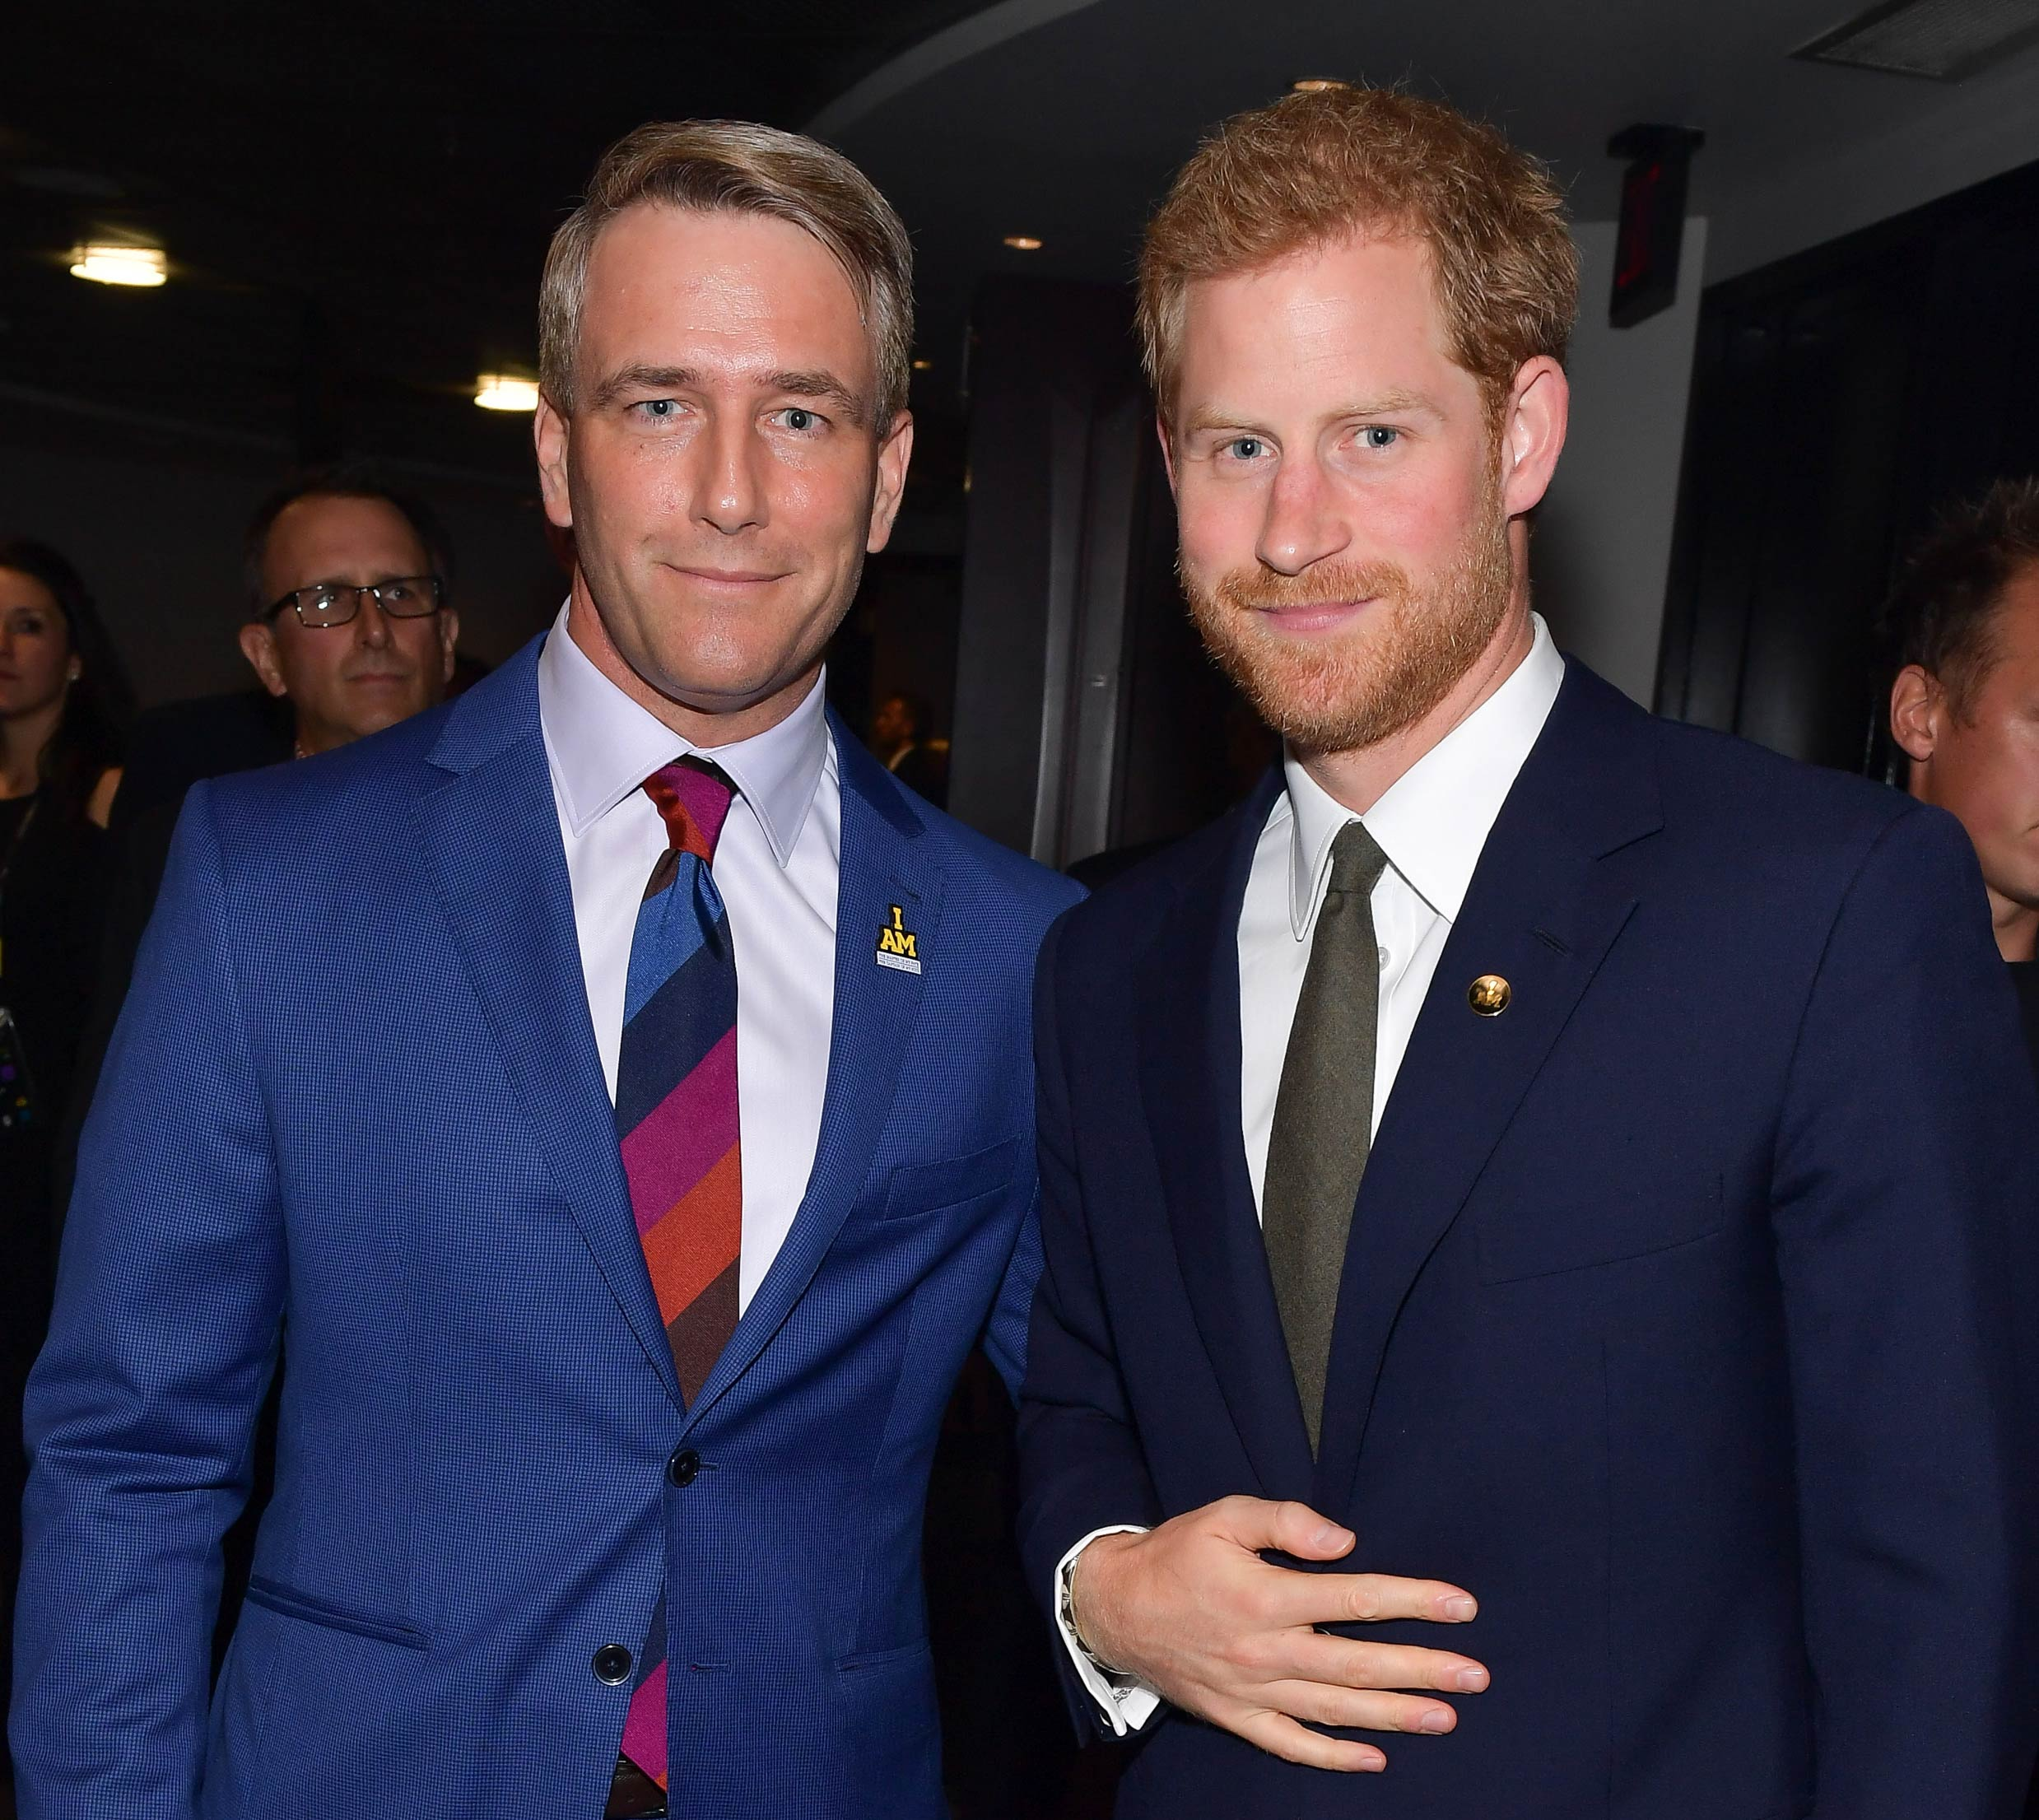 Prince Harry and Michael Burns at the Opening Ceremony VIP Gala